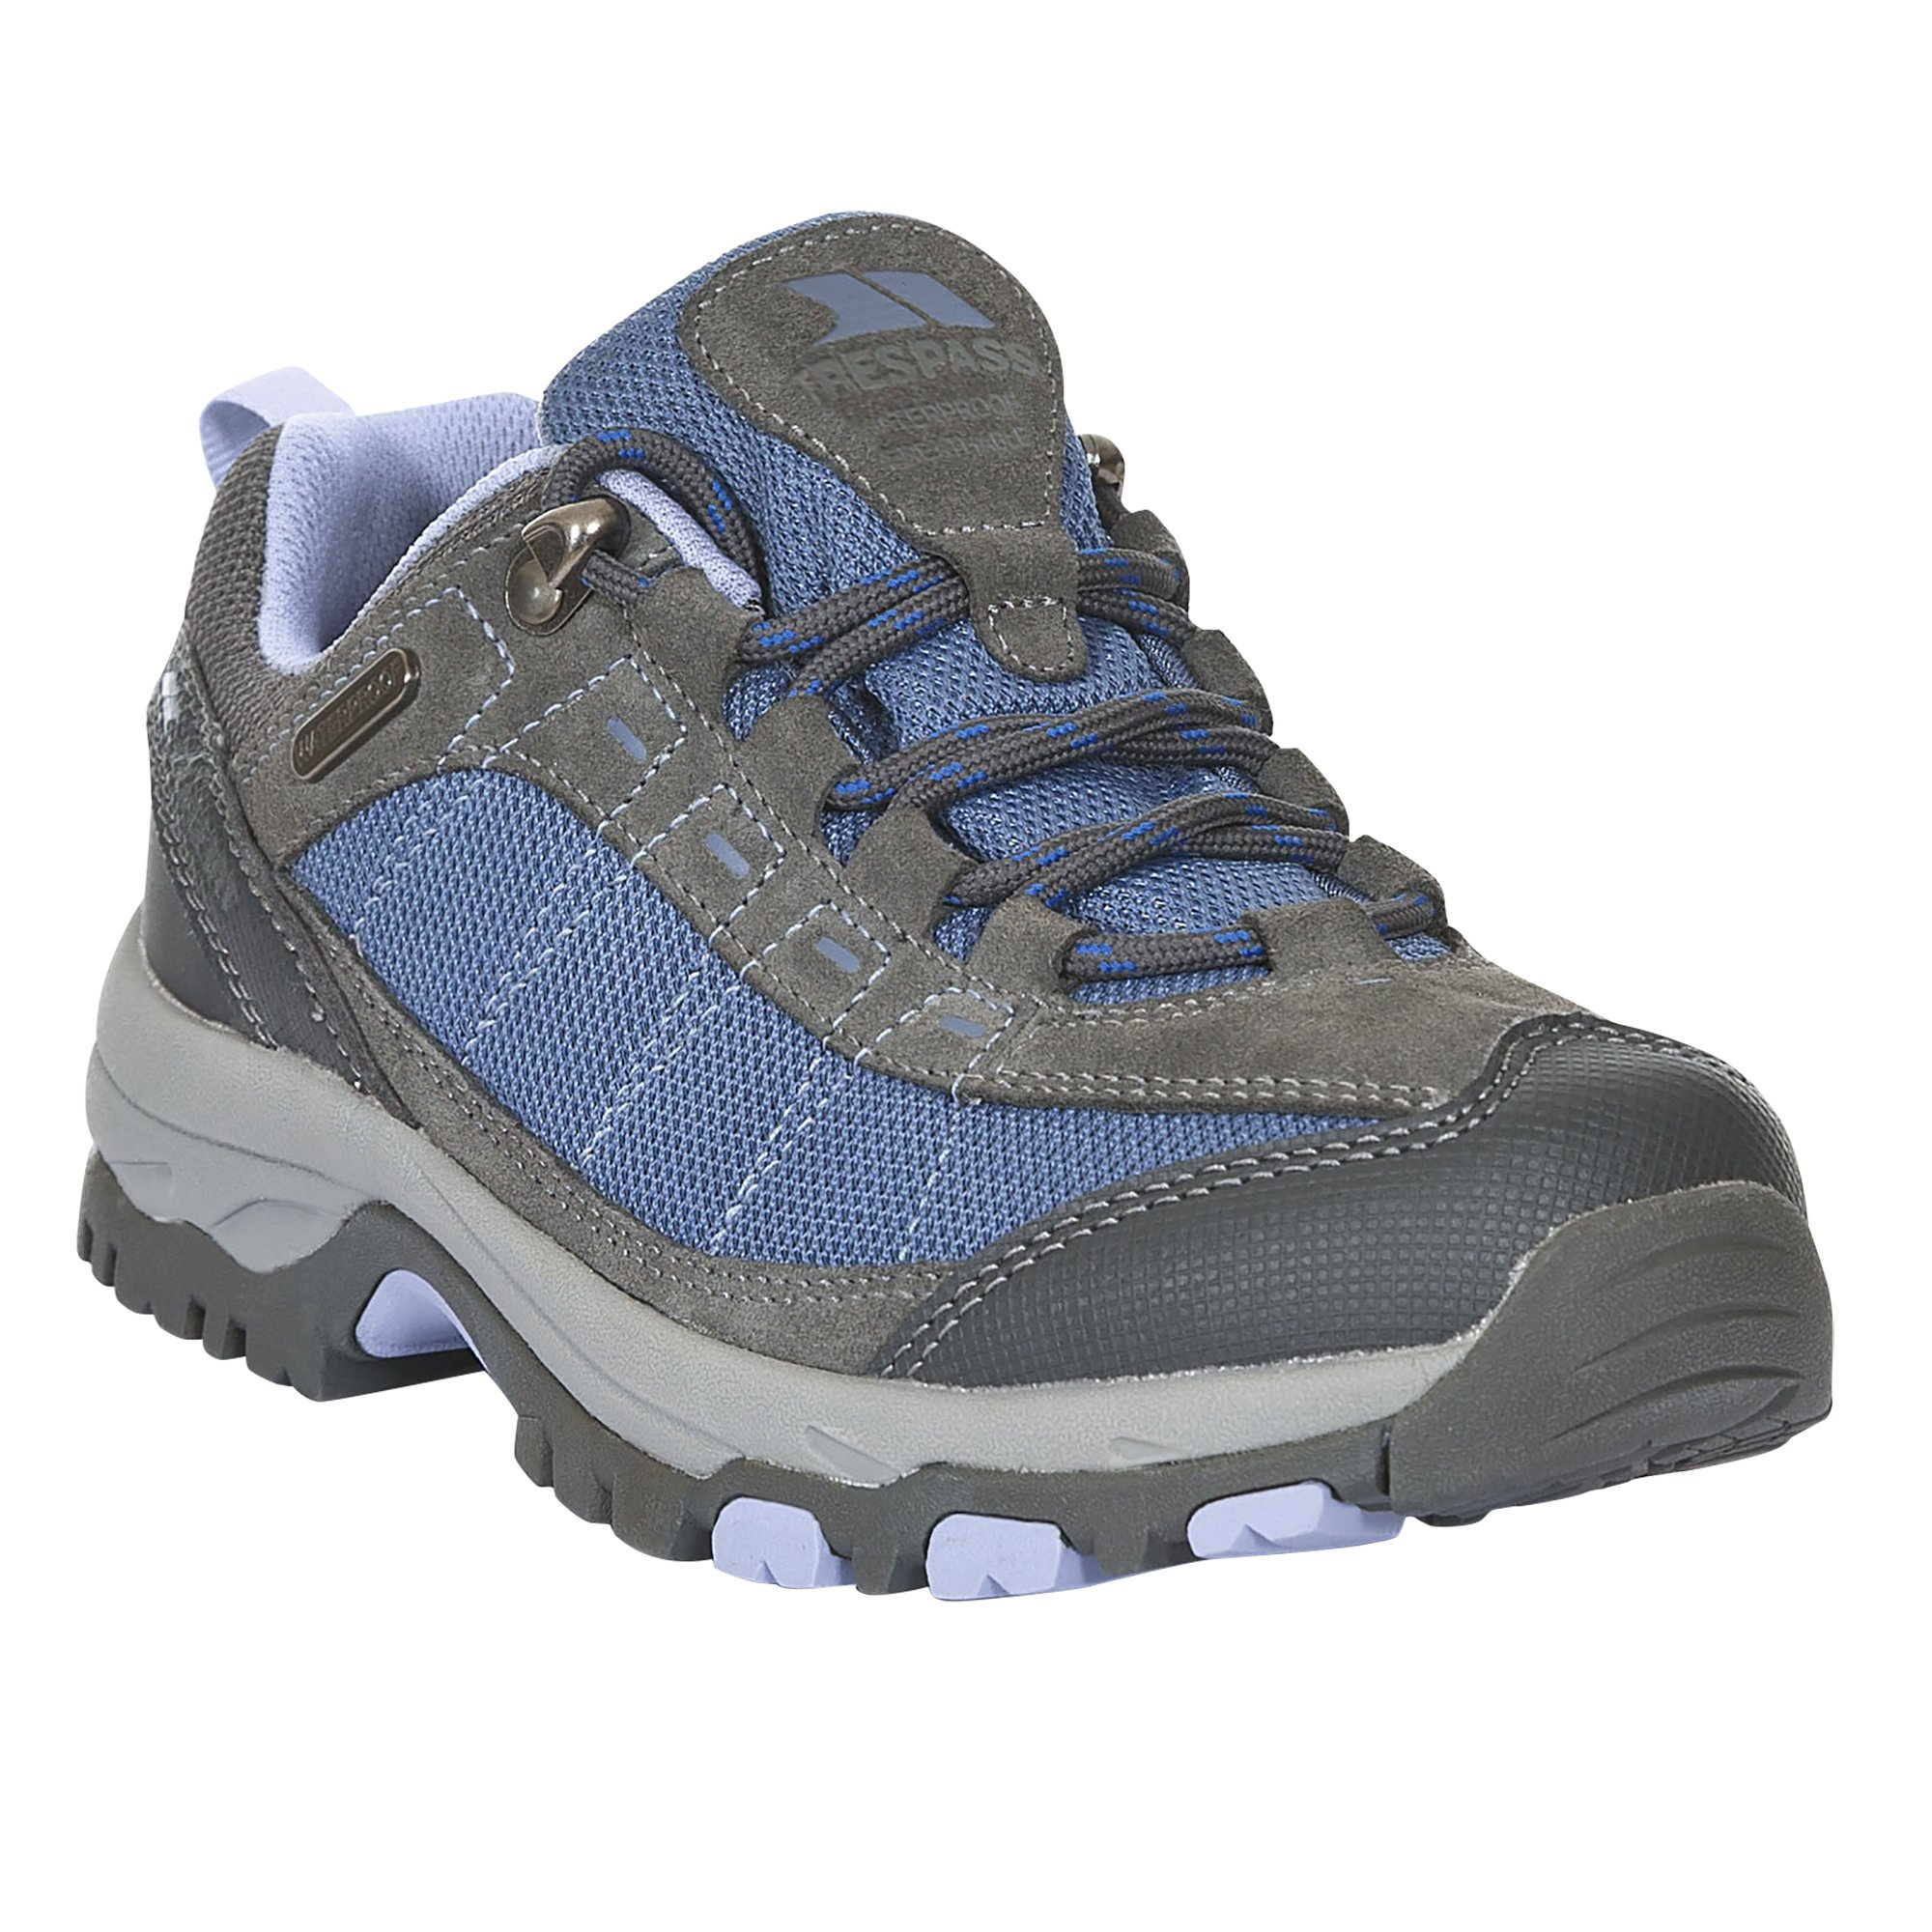 Womens/Ladies Scree Lace up Technical Walking Shoes (9 US) (Steel)